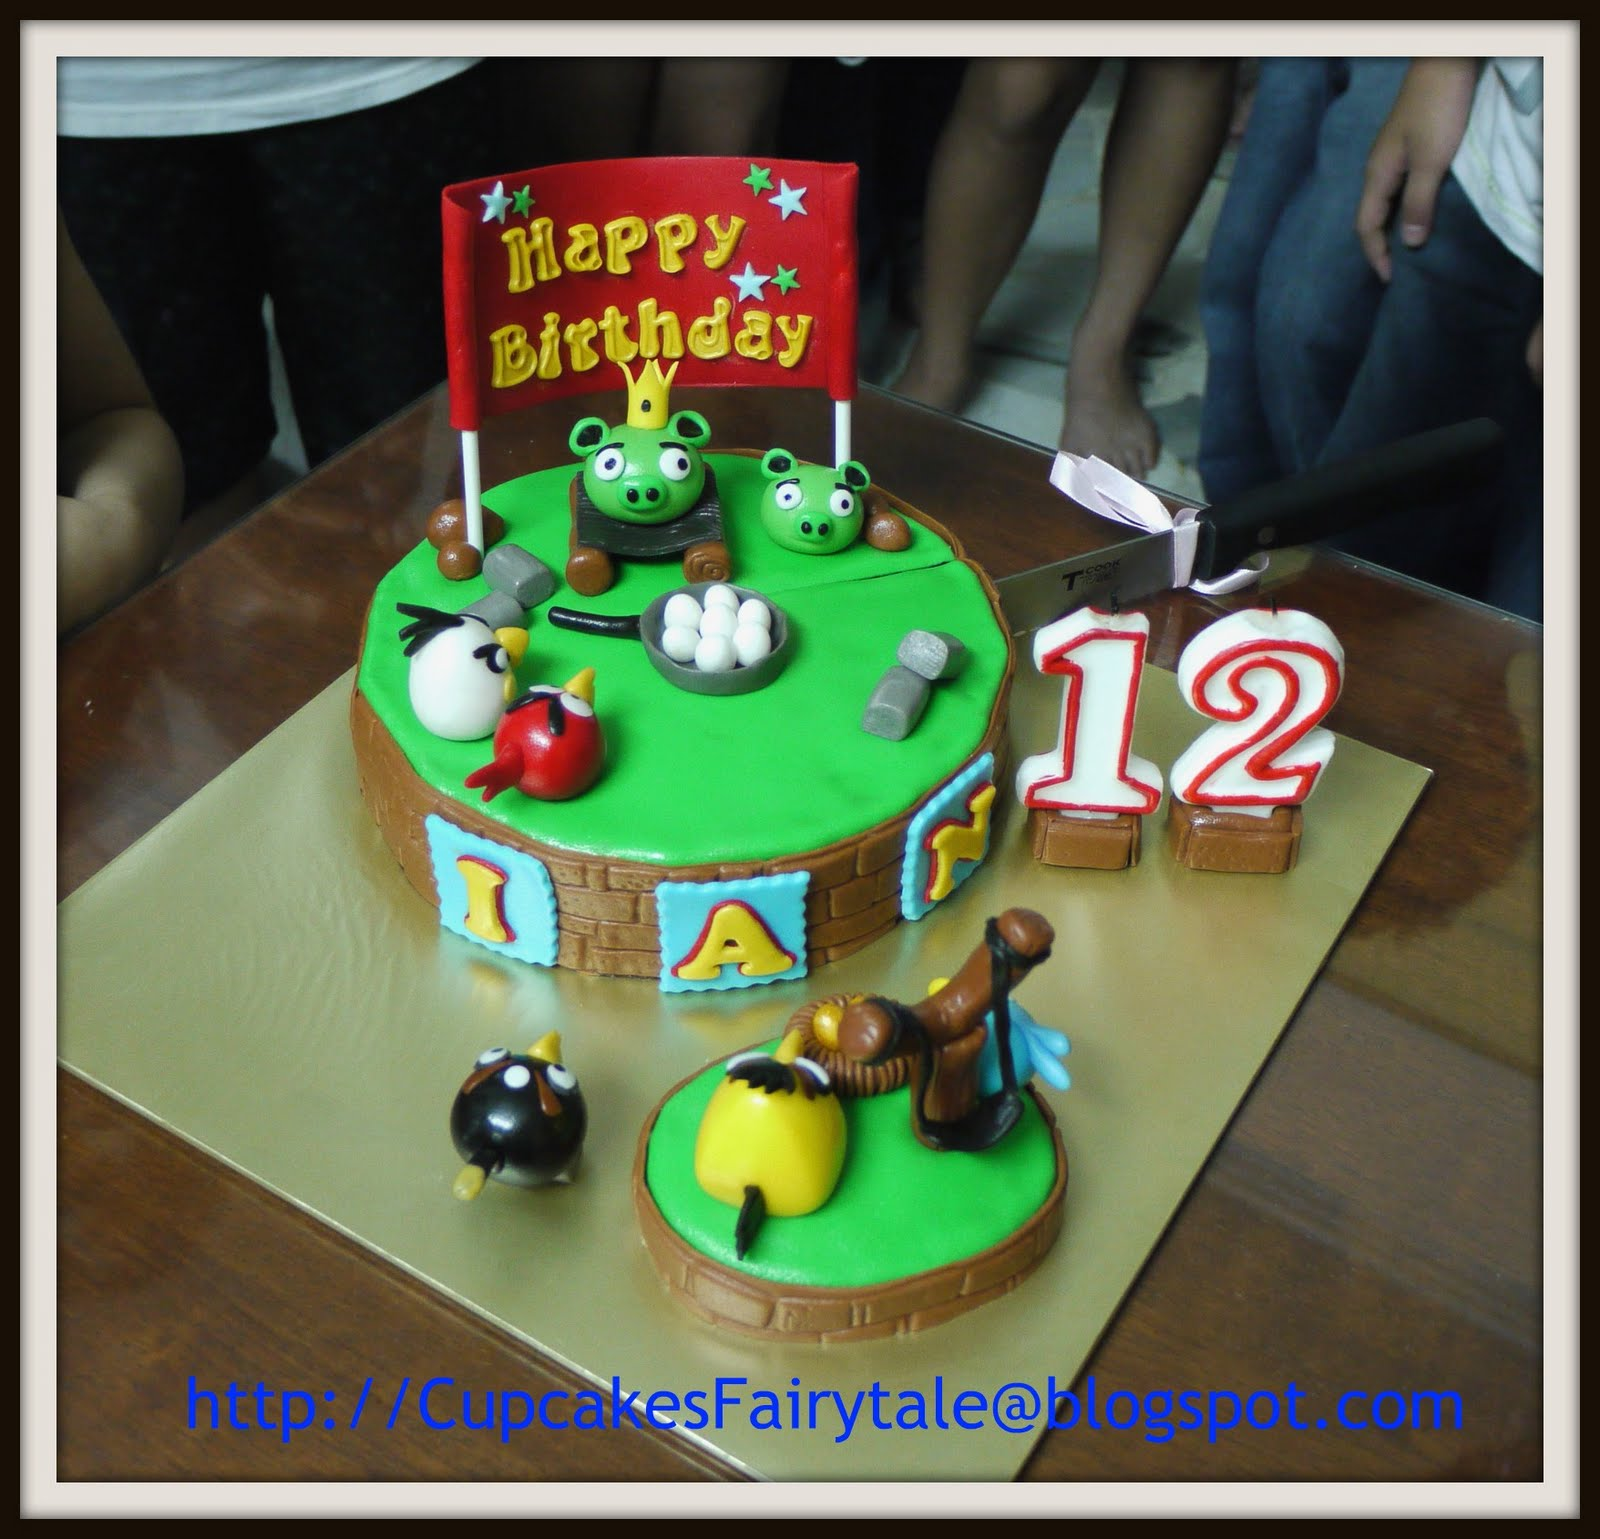 Pleasant 8 12Th Birthday Cakes For Boys Photo The New Year Boys Lego Personalised Birthday Cards Epsylily Jamesorg